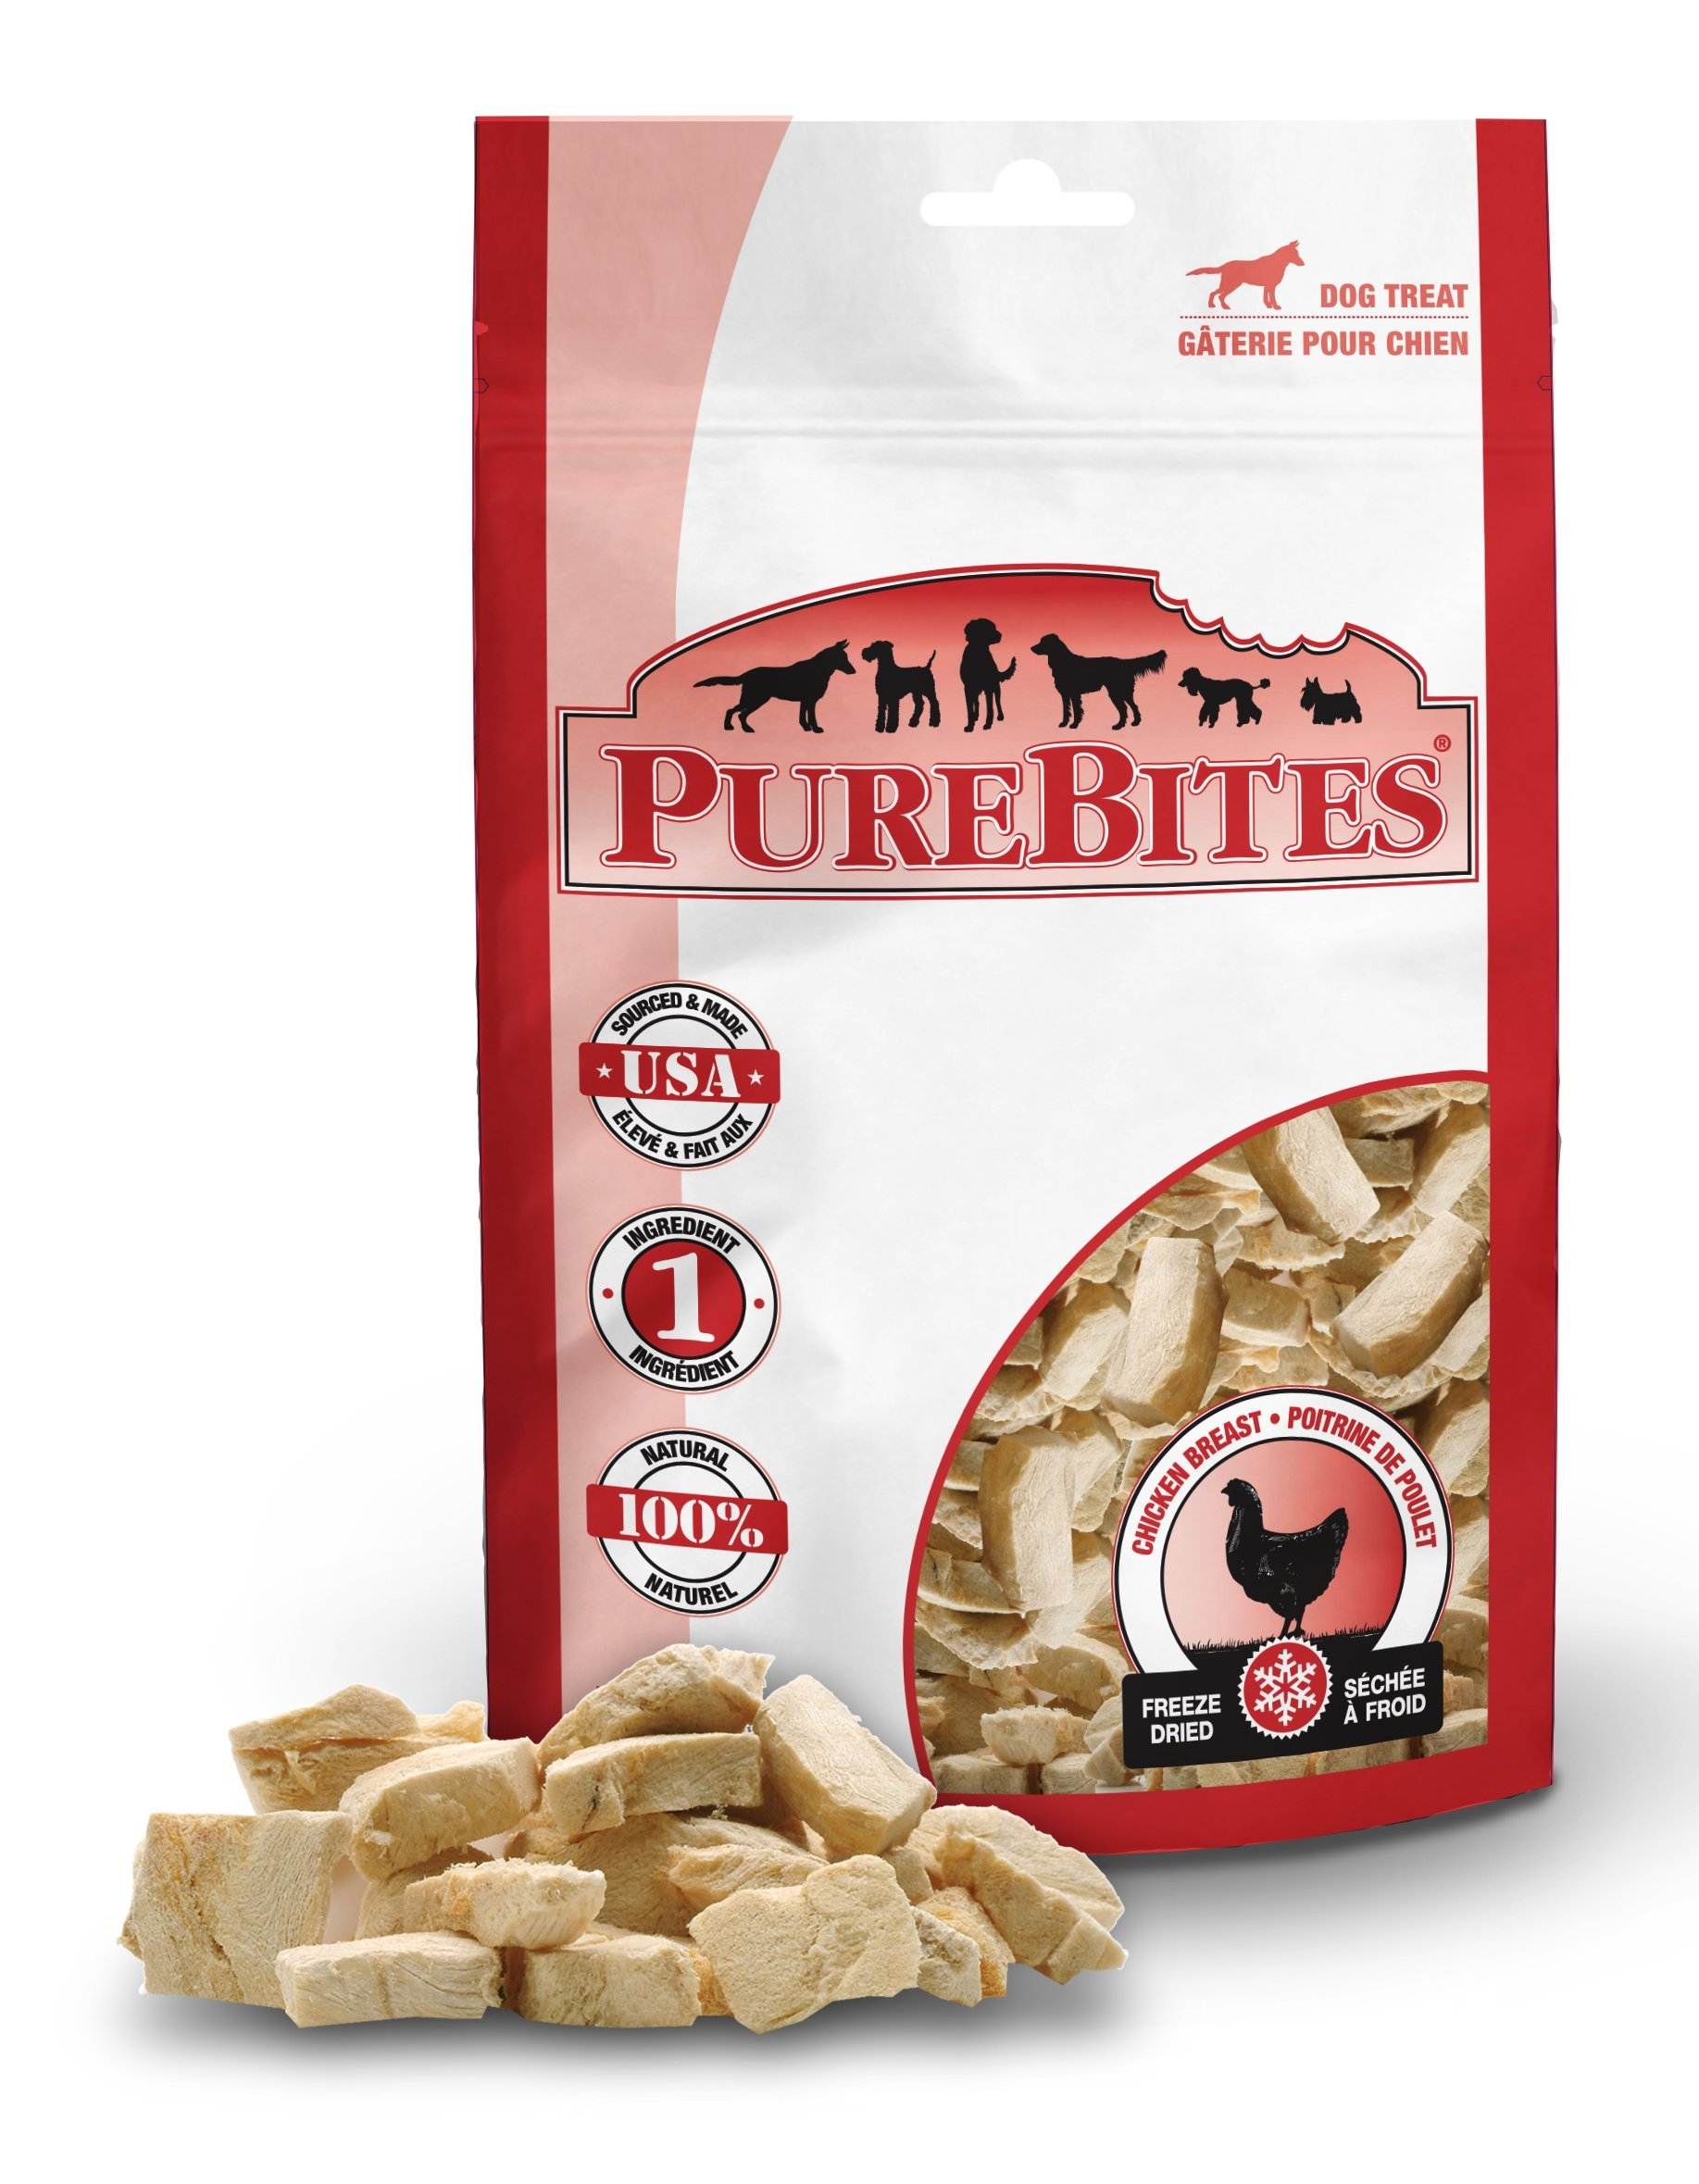 Purebites Dog Treats Reviews